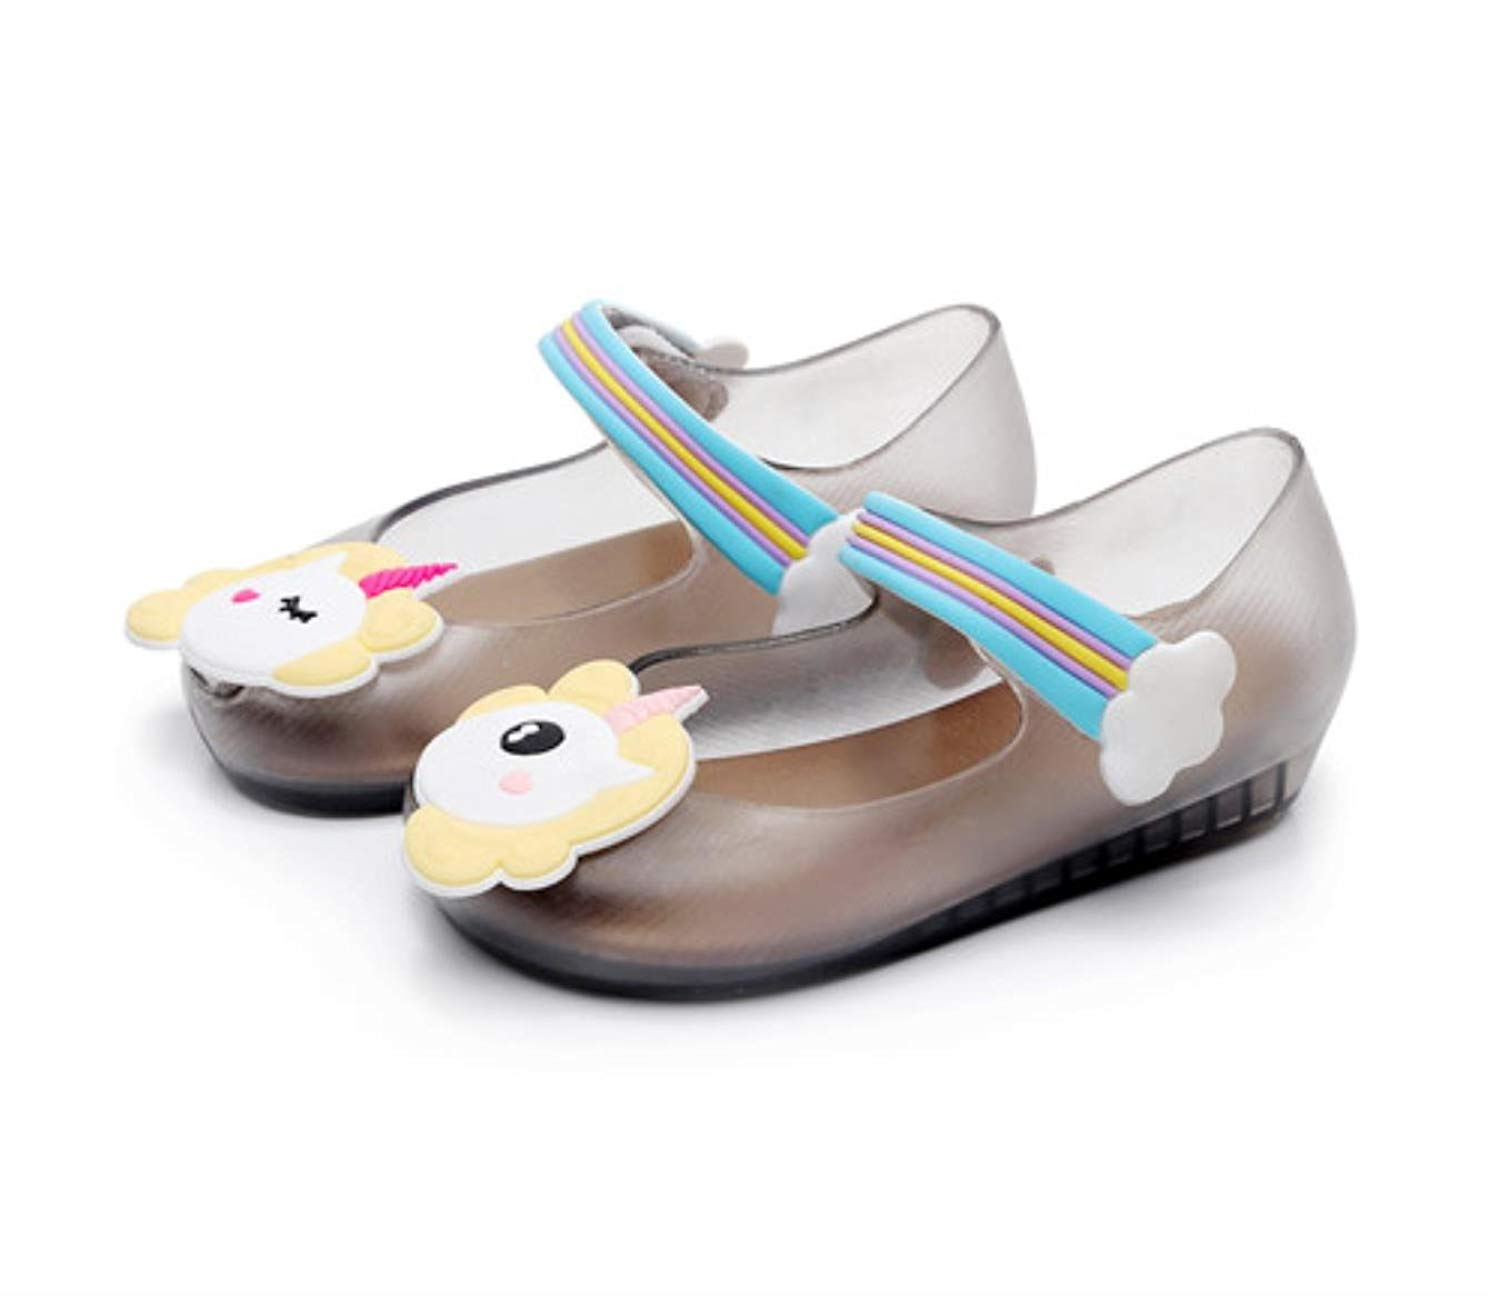 09e82913cac4 Get Quotations · Girls Children Beach Mini Melissa Jelly Shoes Fish Head  Slippers Cute Princess Shoes